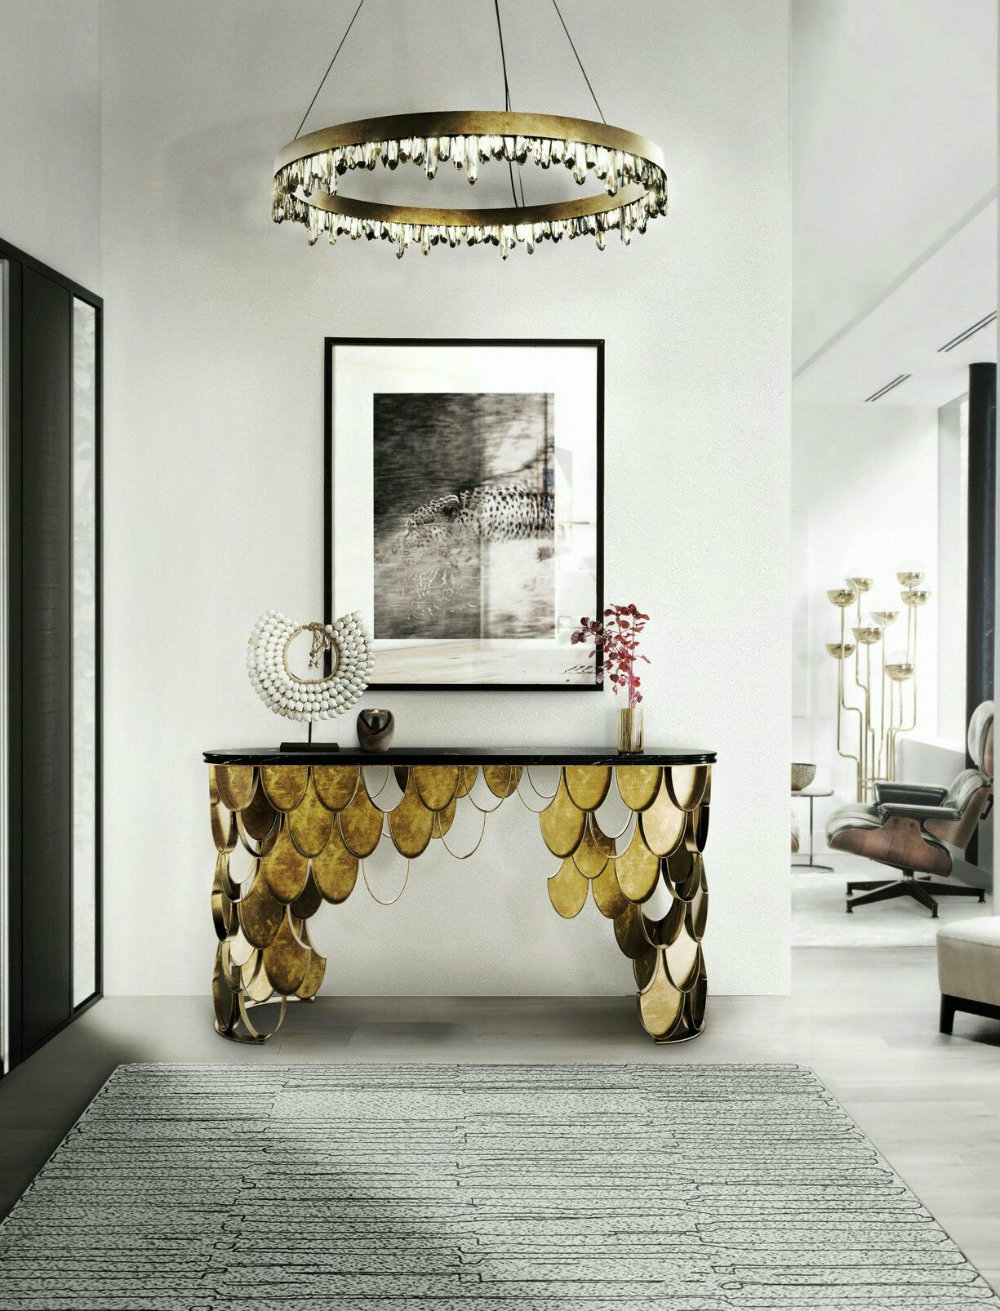 Here Is Why You Need These Amazing Chandeliers For Your Entryway entryway Here Is Why You Need These Amazing Chandeliers For Your Entryway Here Is Why You Need These Amazing Chandeliers For Your Entryway 3